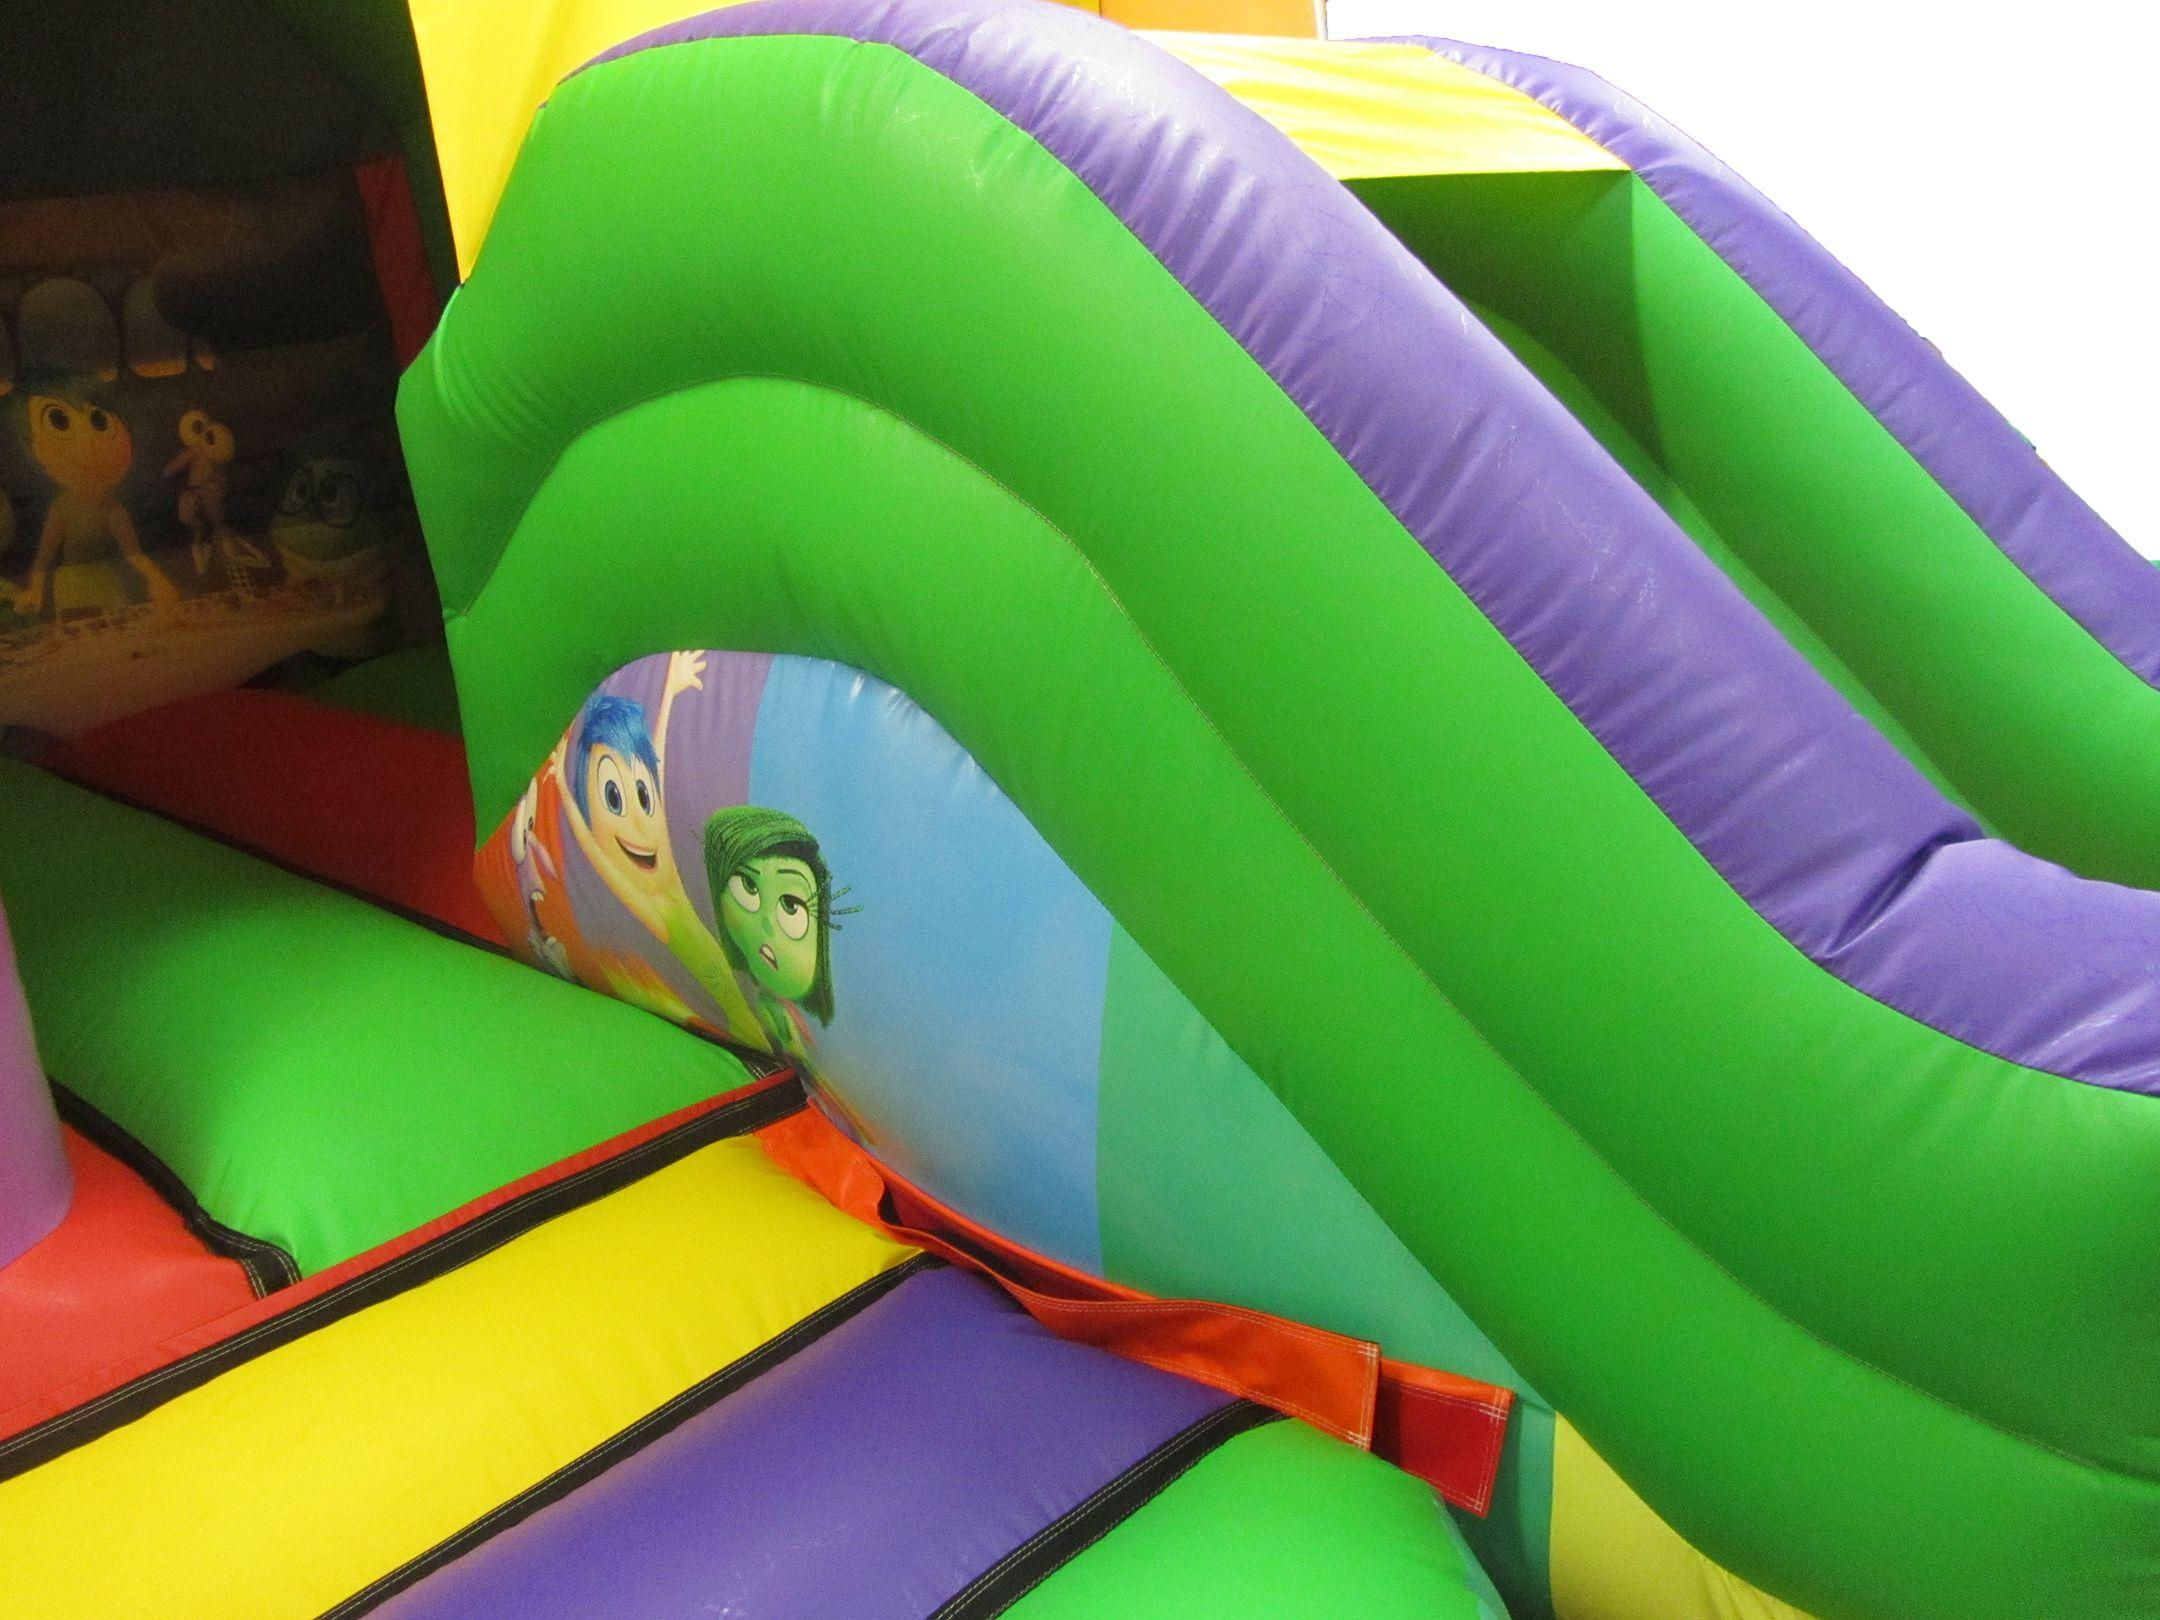 Bouncy Slide Artwork